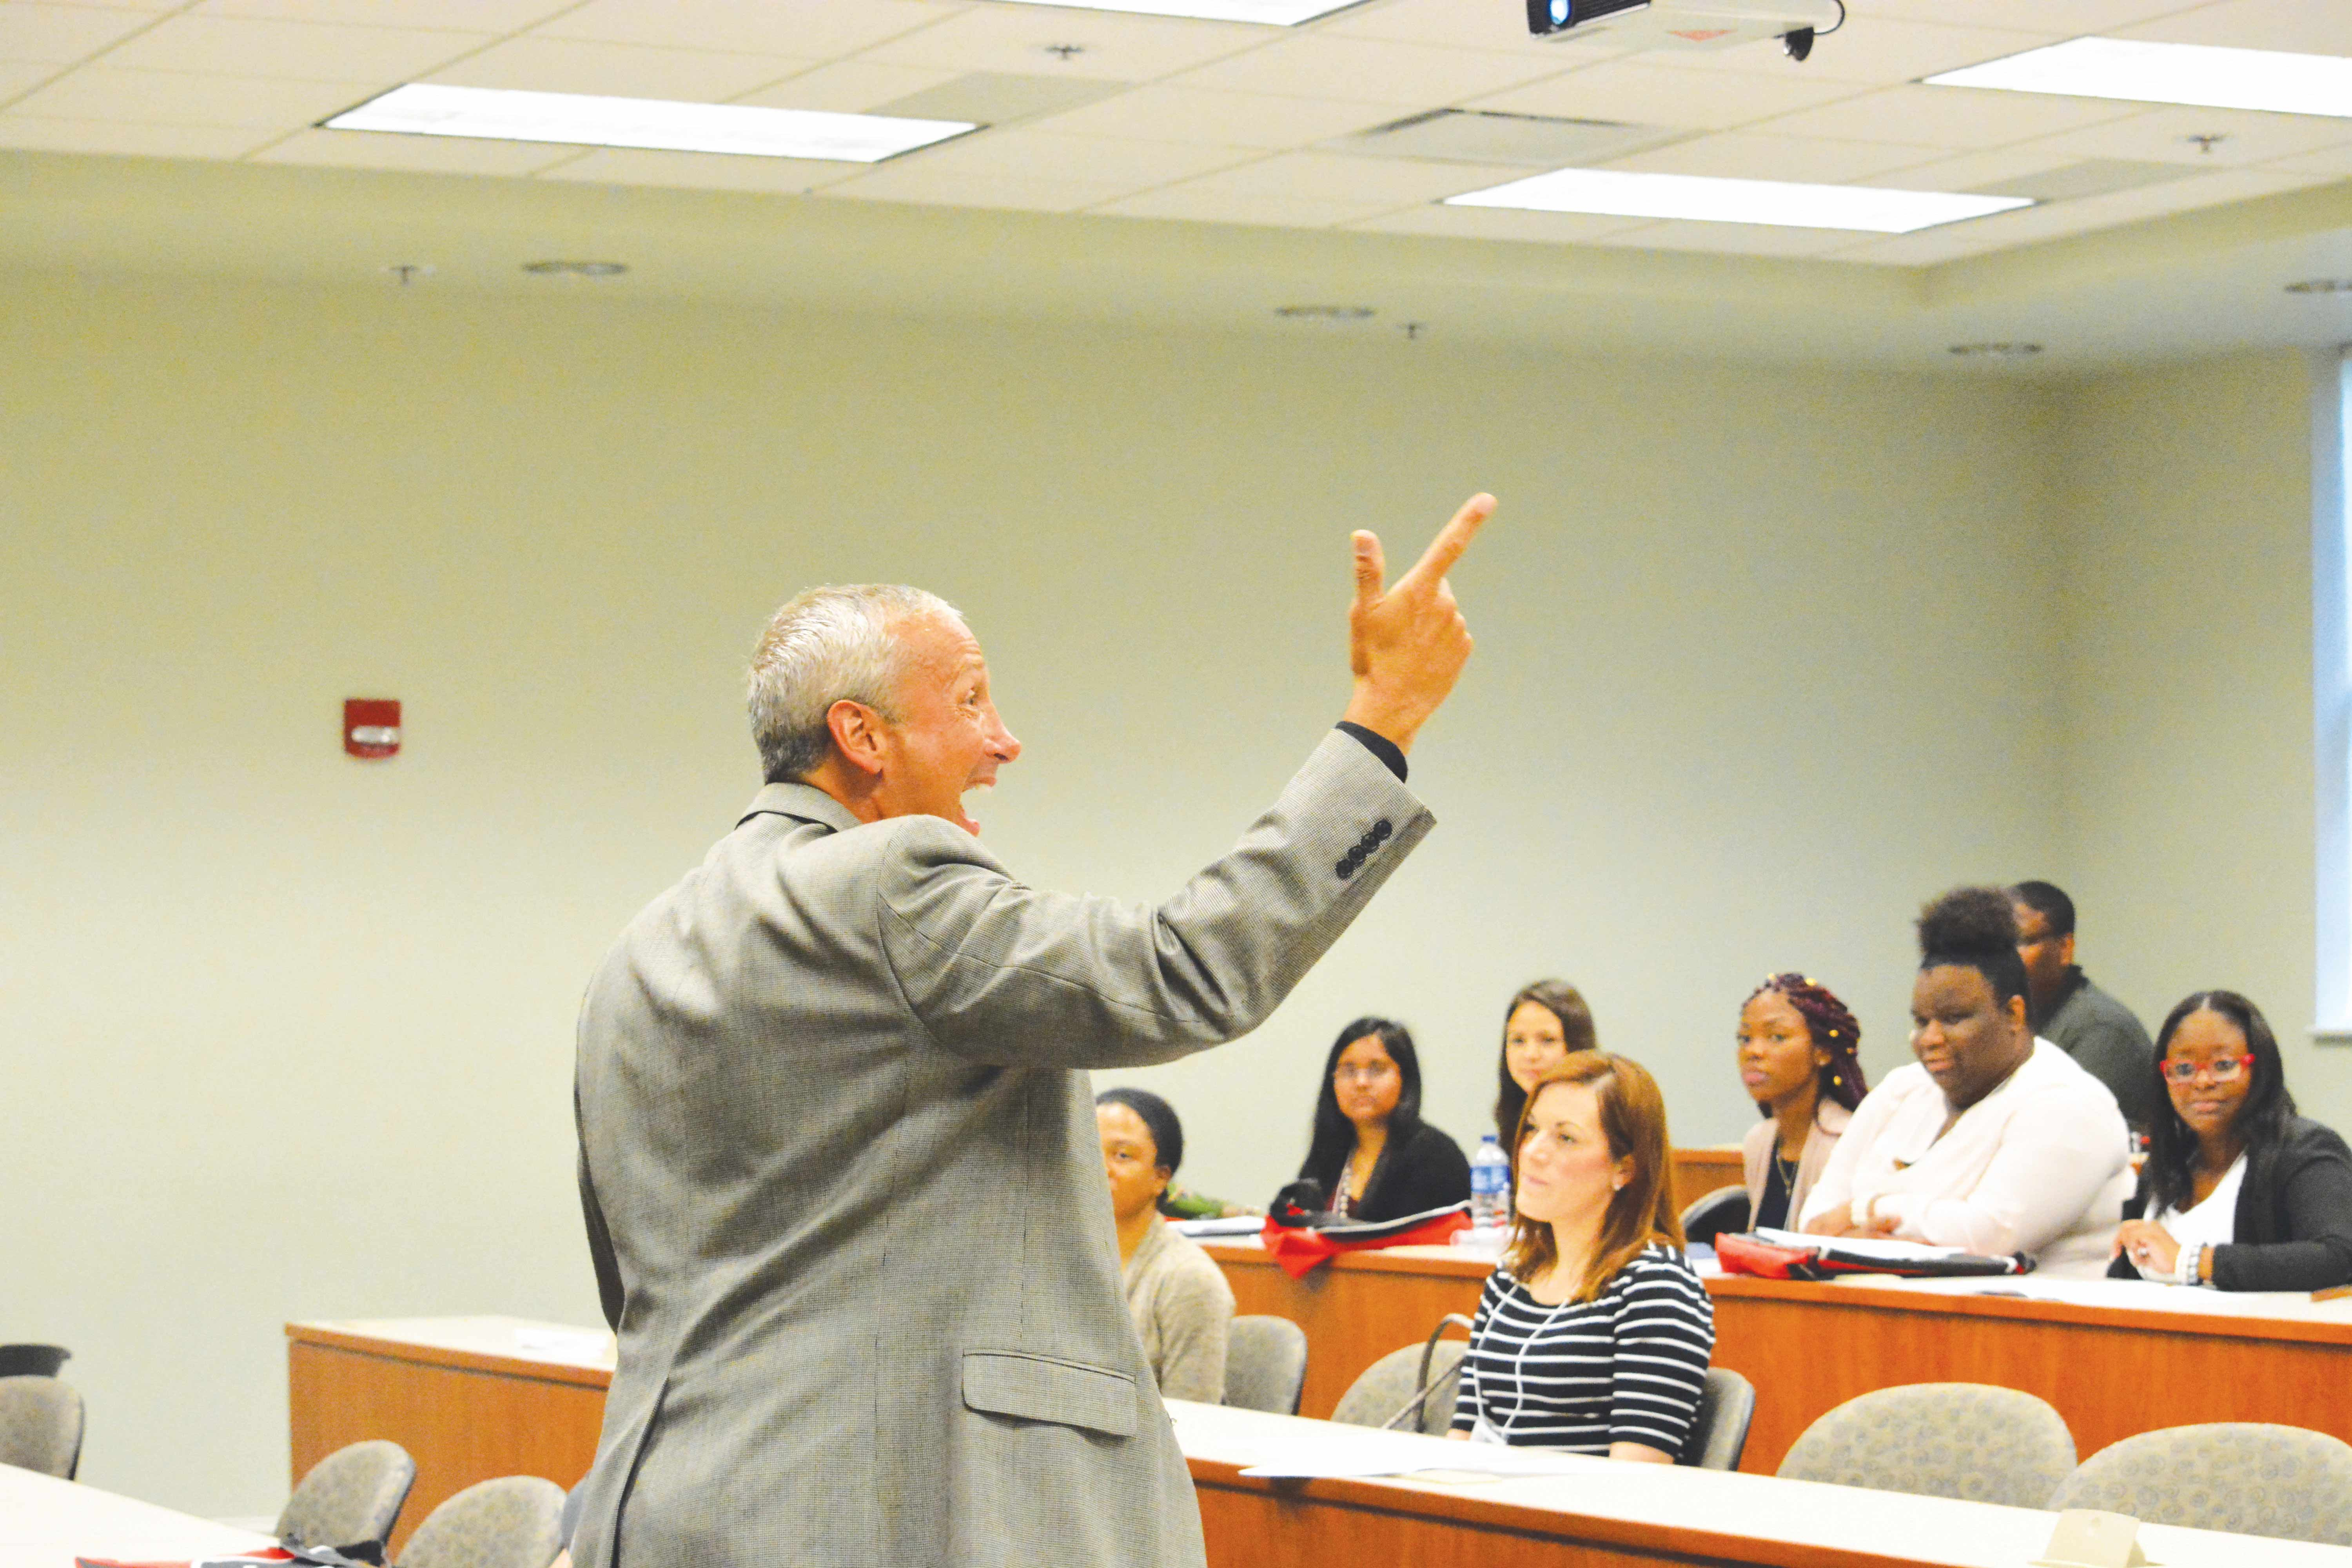 Dr. Hubert Seltzer, a business professor, speaks to students about the value of good communication skills to a leadership.